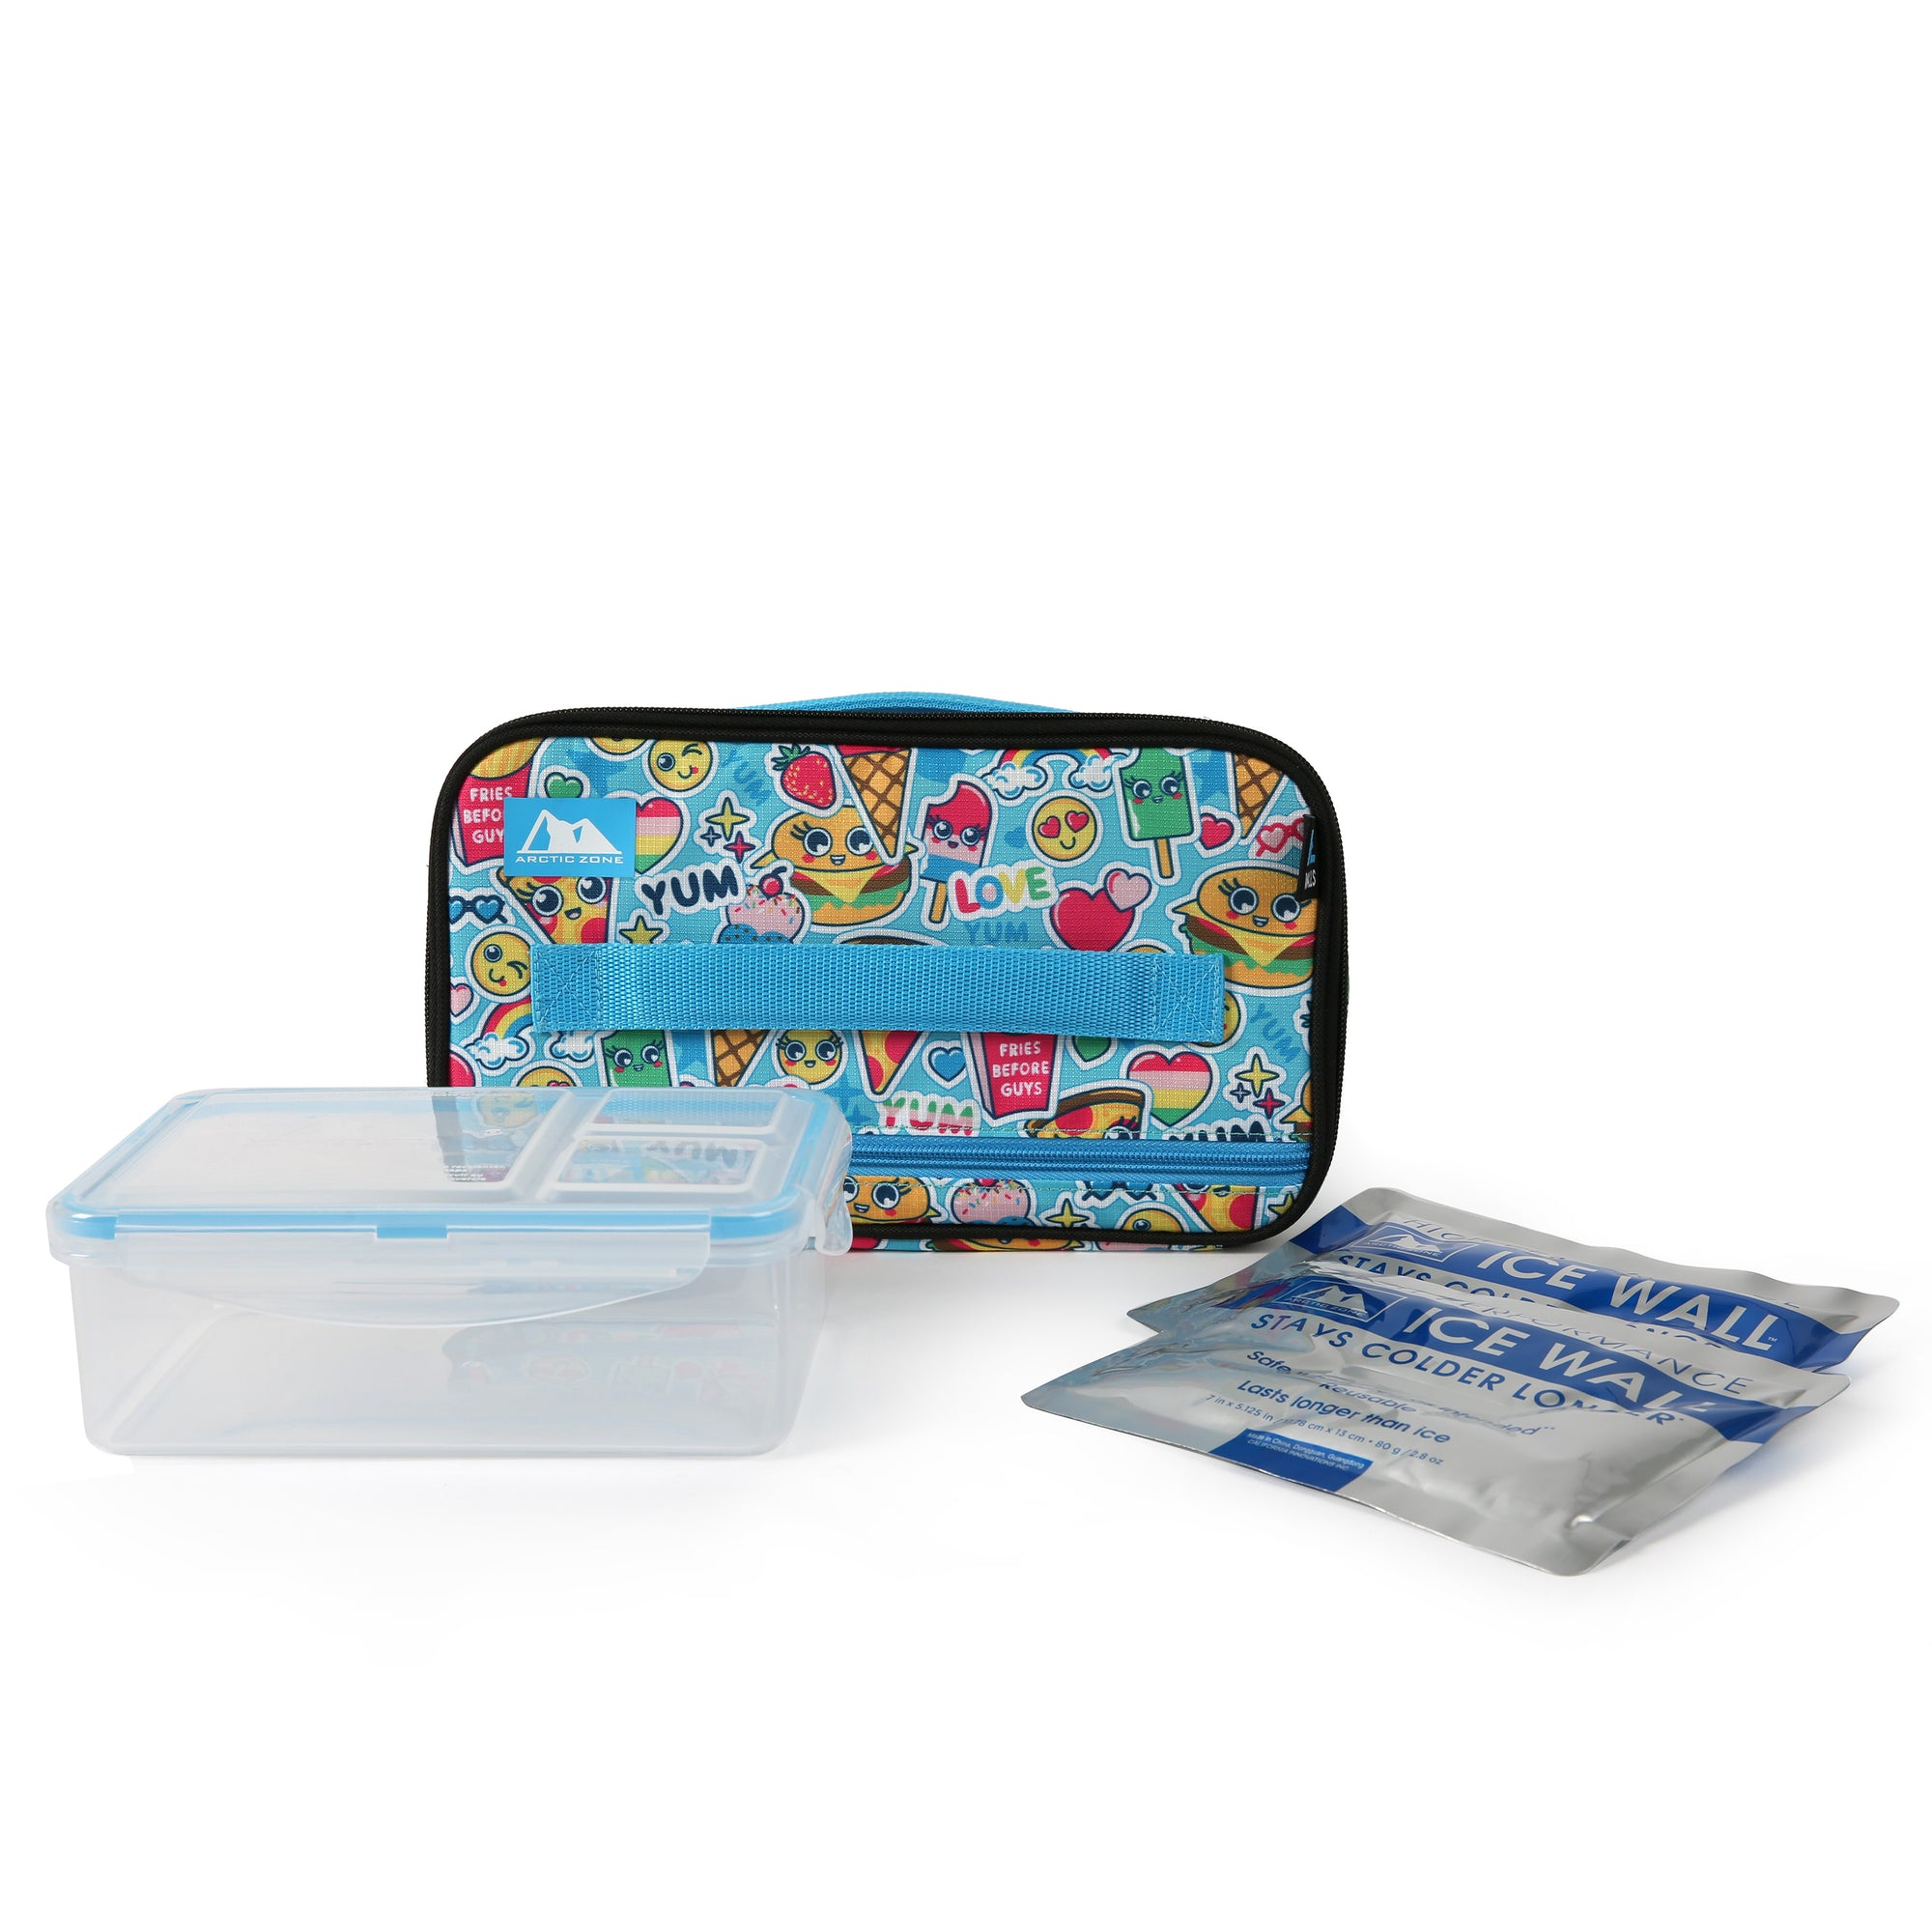 Ice Walls® Lunch Box with 2x 140g High Performance Ice Walls® & 2pc Leak Proof Food Container - Cute food